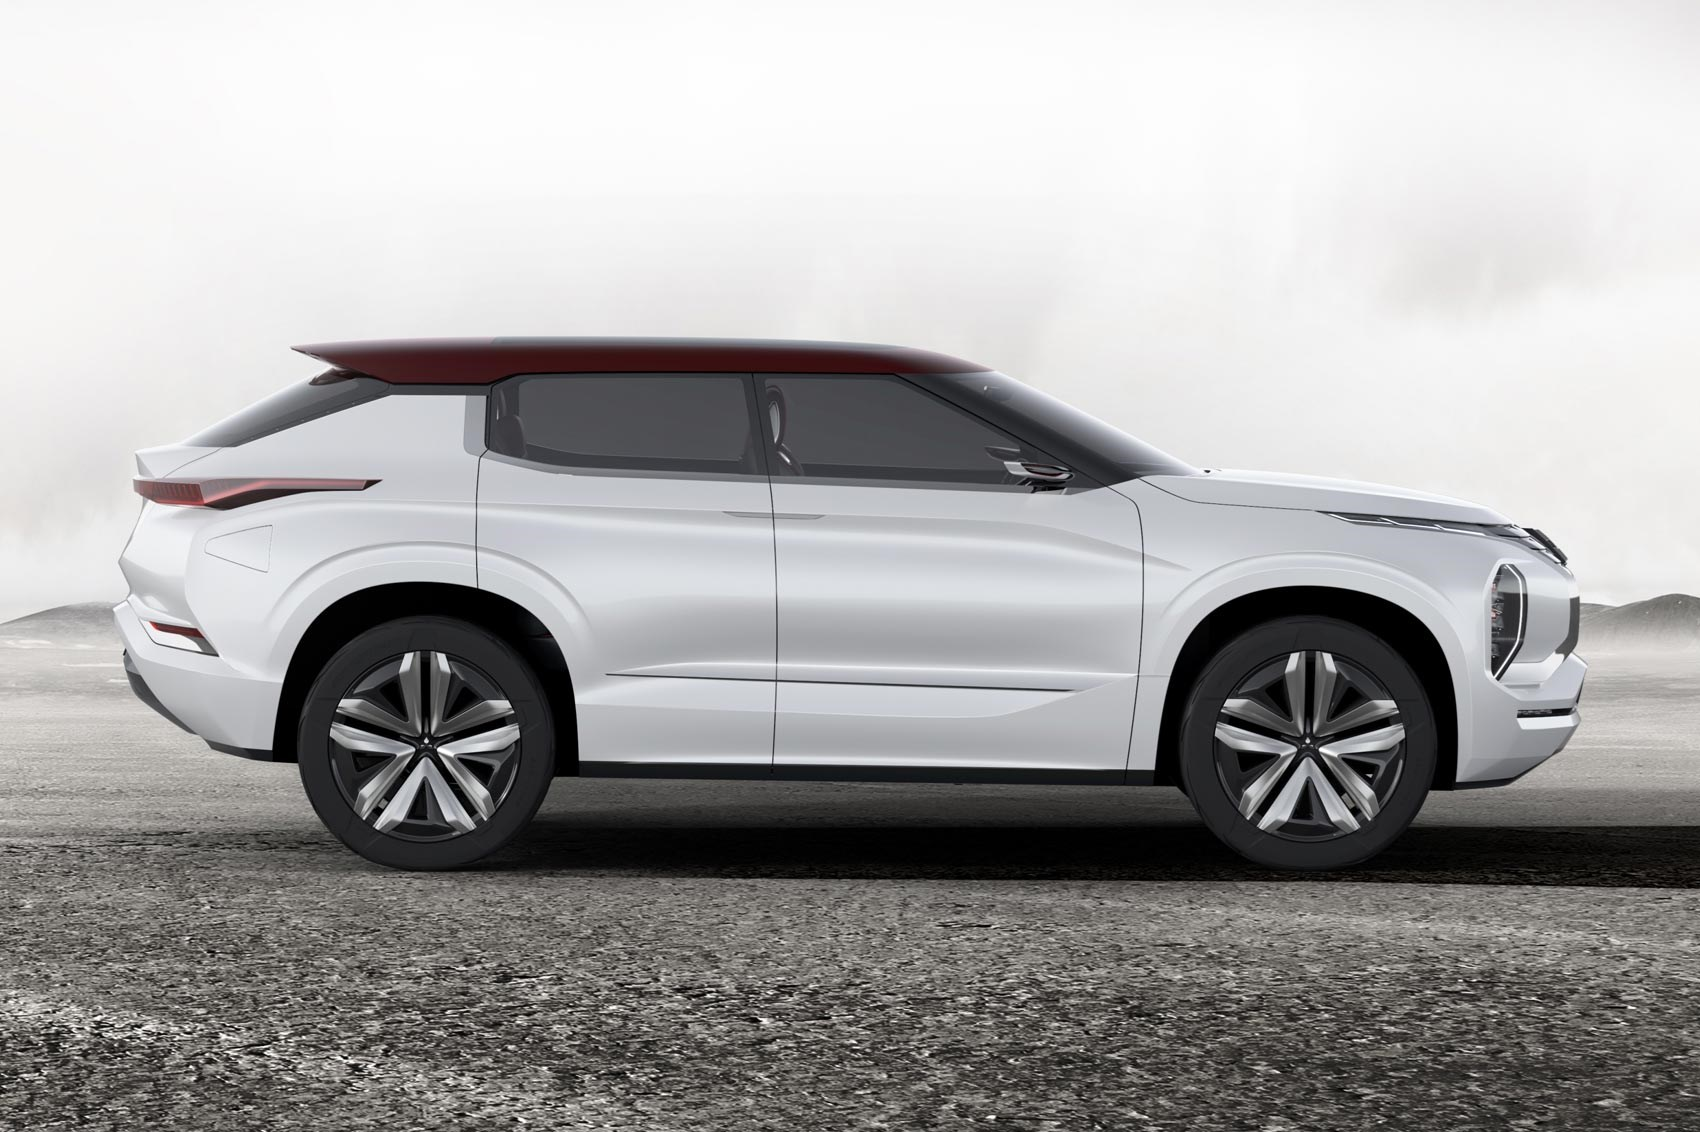 at events advertisement gt news next motor shows its tourer triple concept mitsubishi outlander car phev ground the play revealed lmitsu paris suv by teased